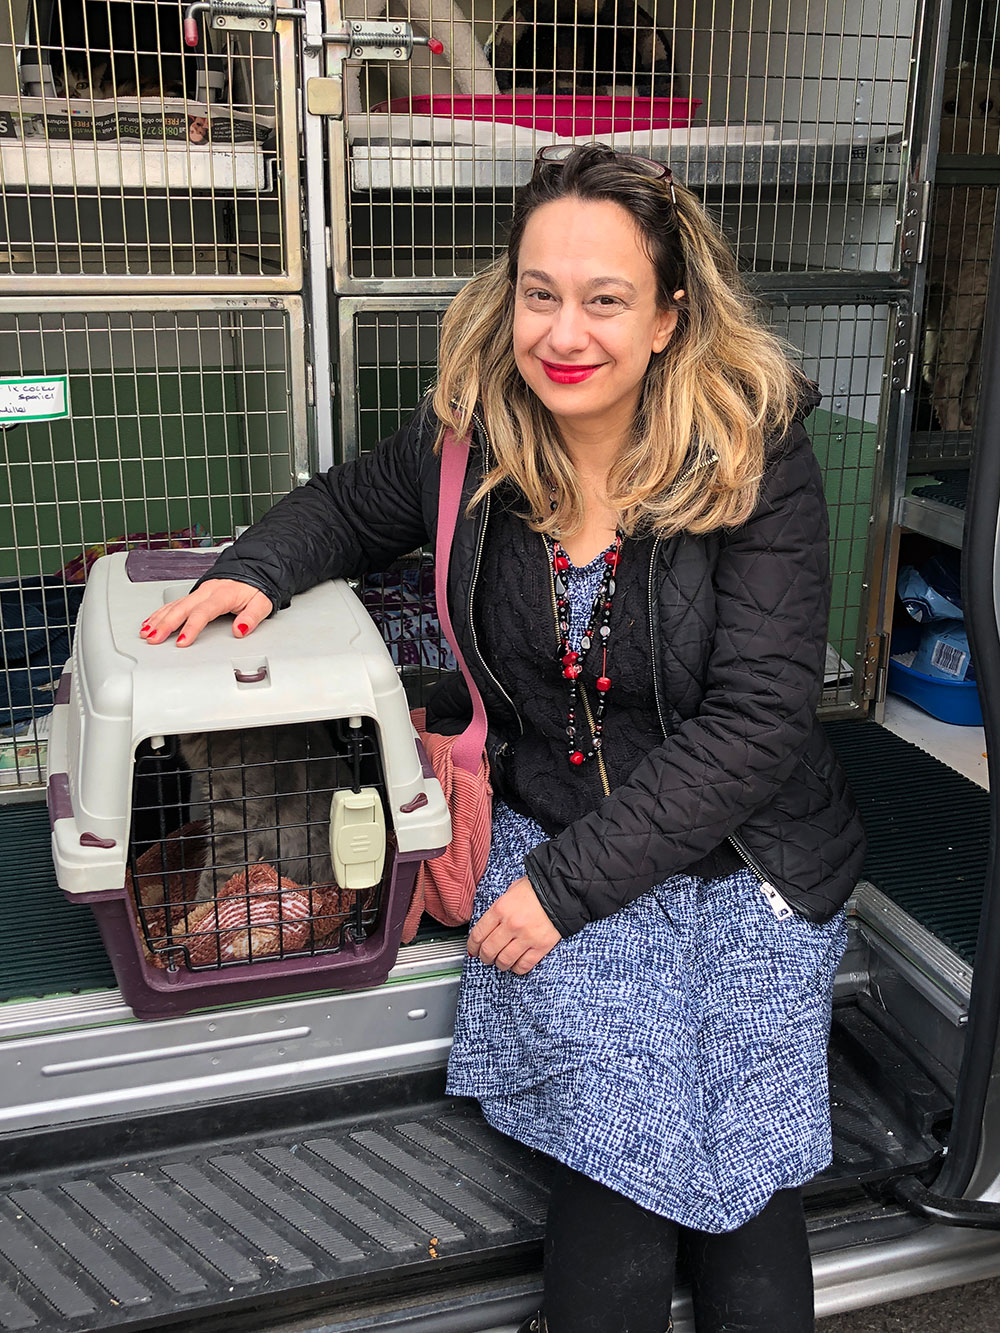 Nine Lives Greecearrived with two kittens and a cat who've been adopted by Michelle in England